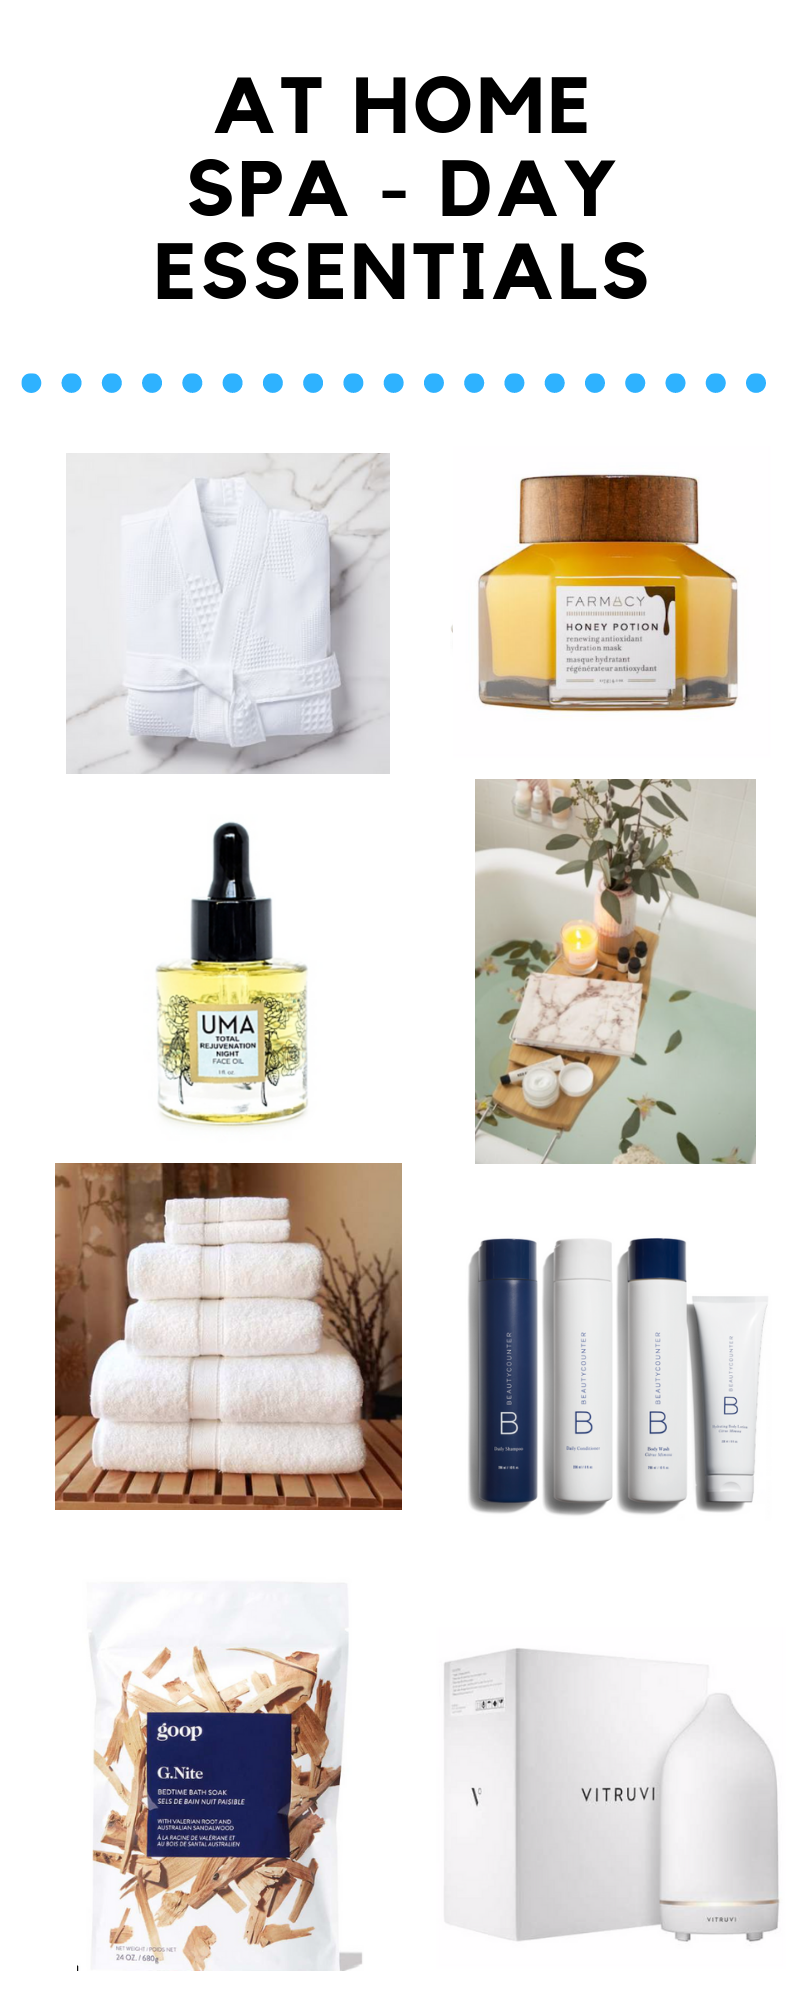 AT HOME SPA - DAY ESSENTIALS